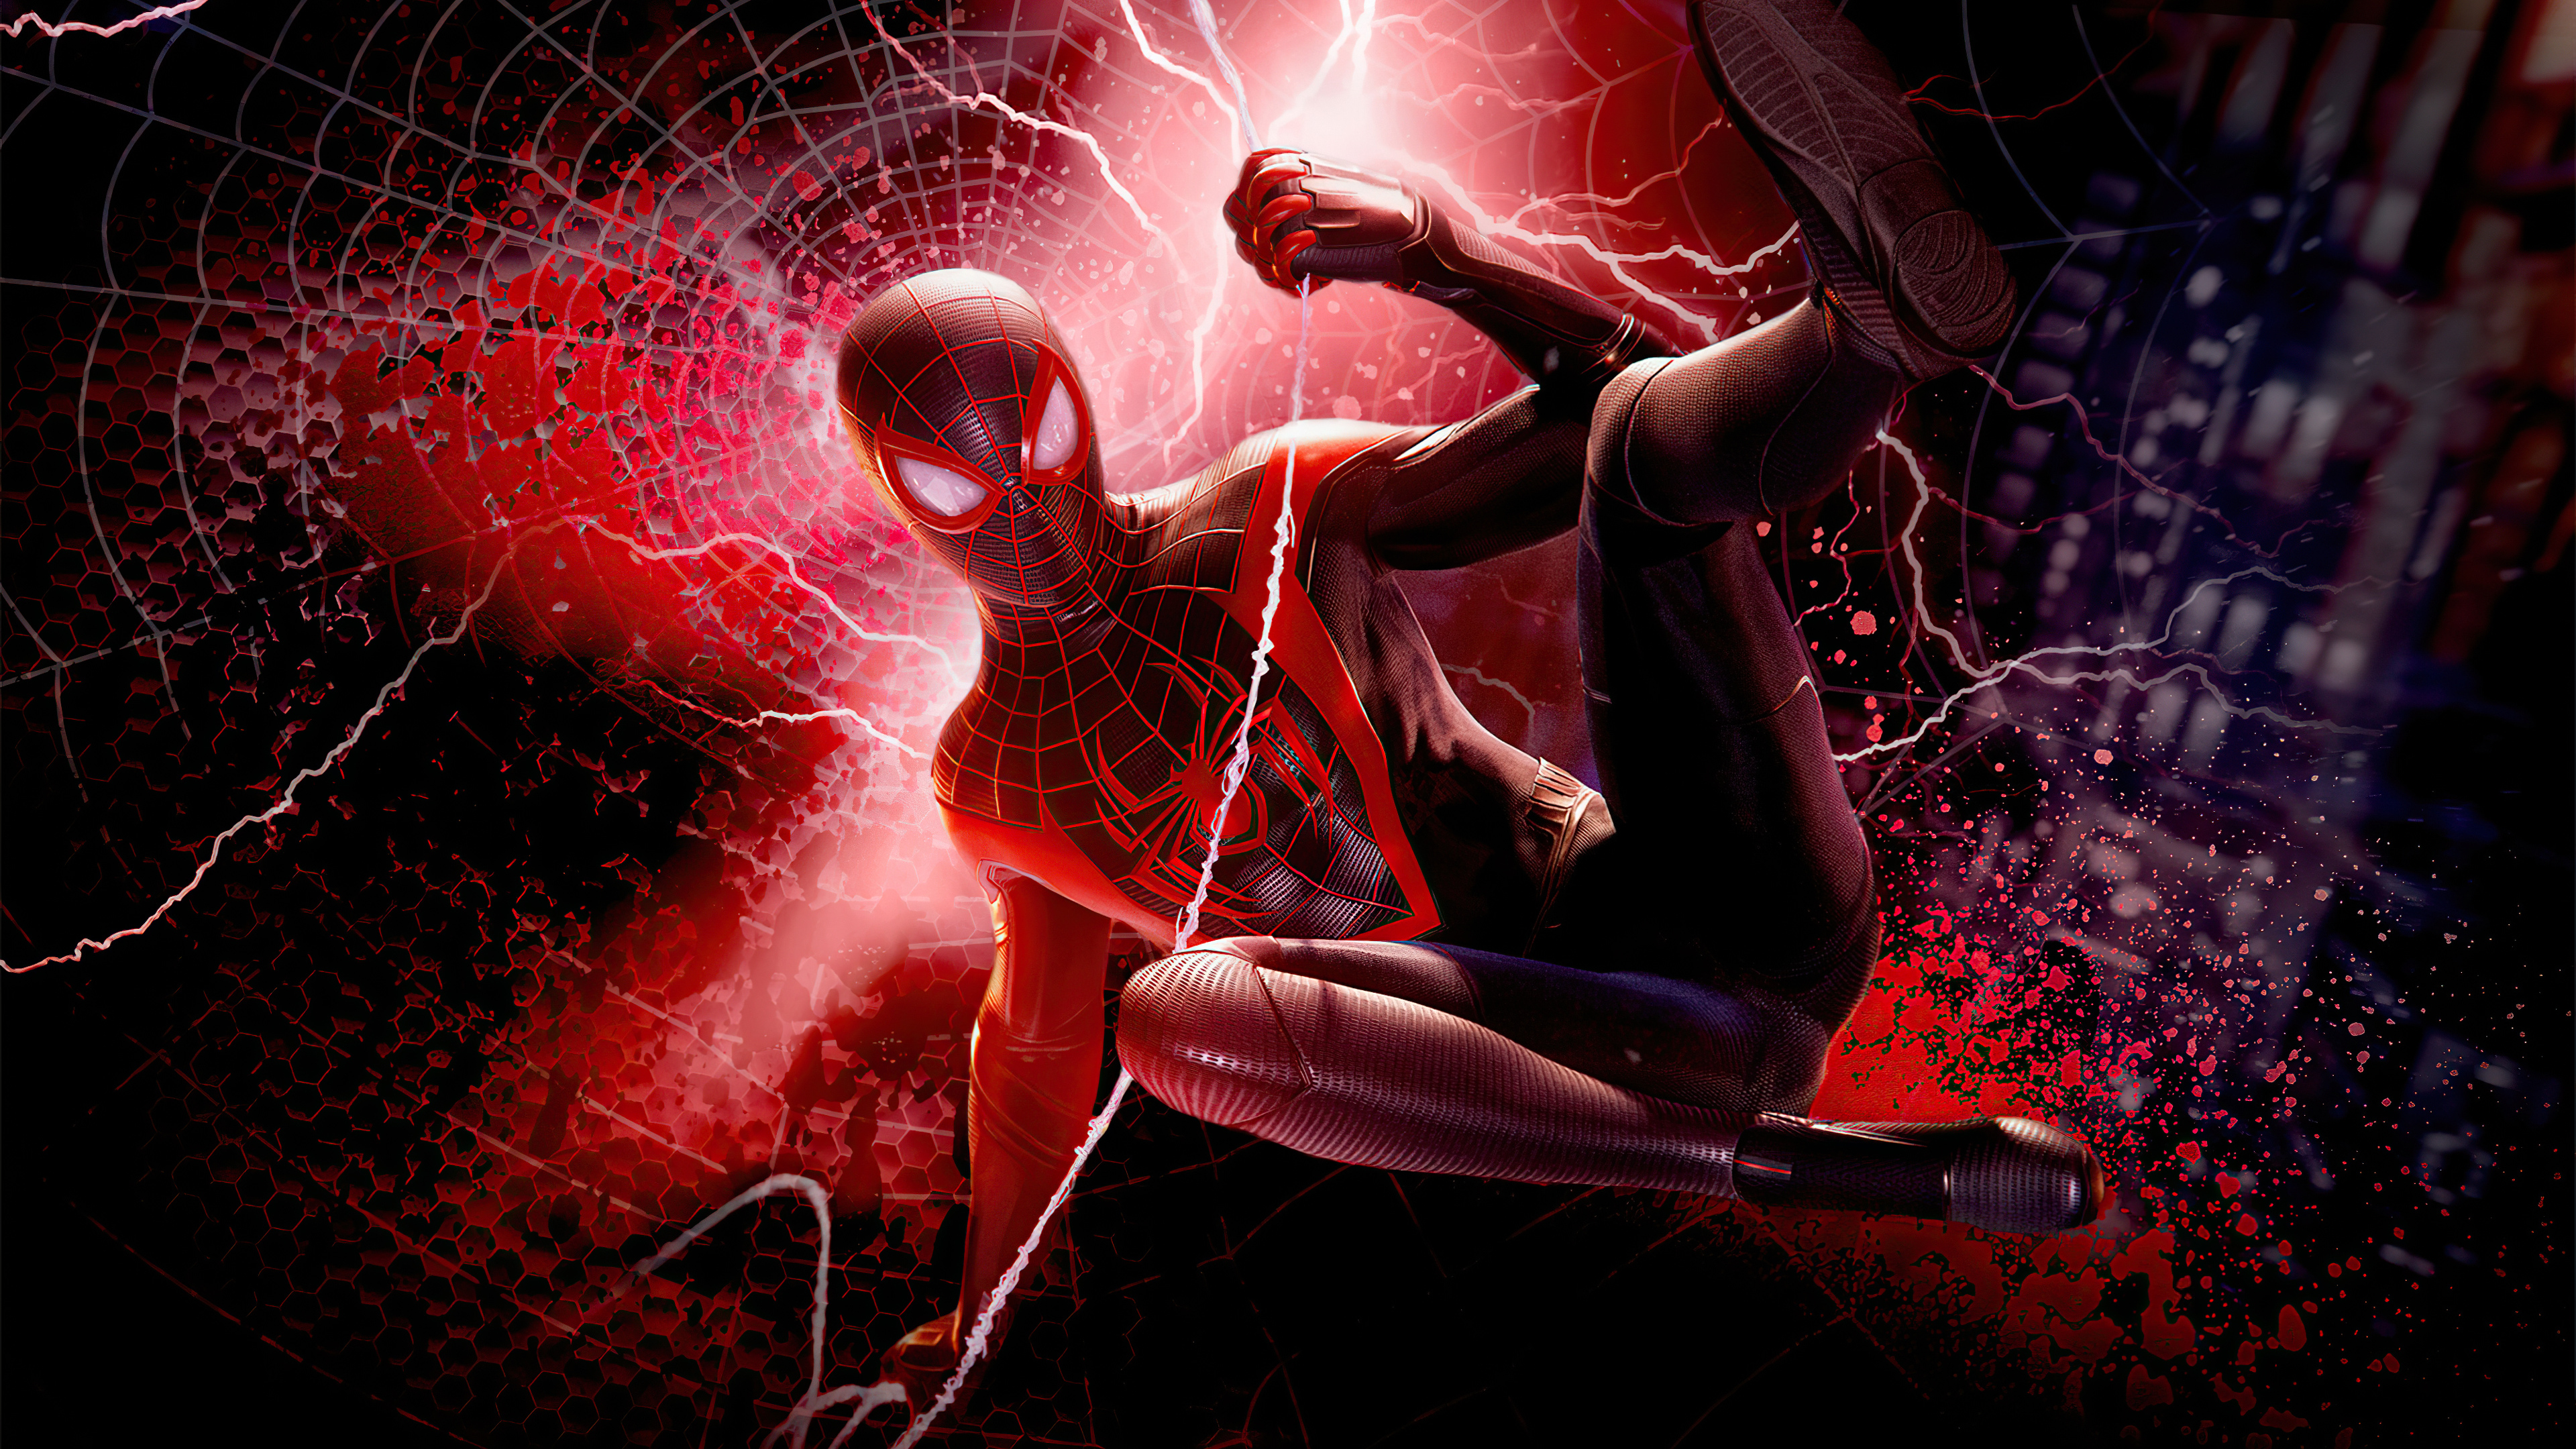 marvels-spiderman-miles-morales-coming-i6.jpg